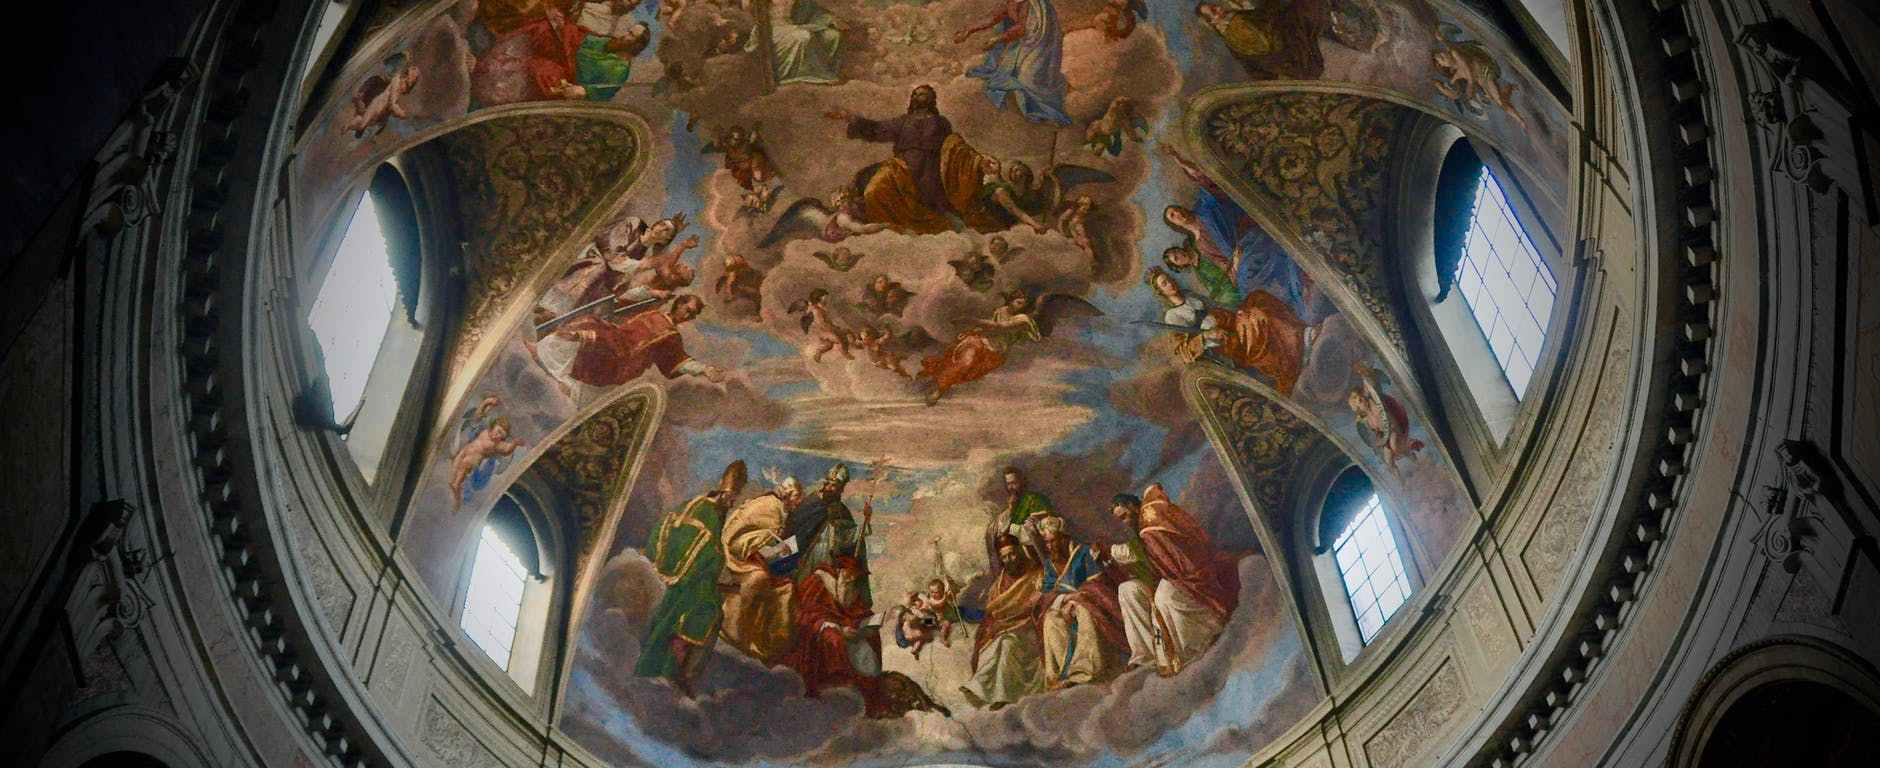 painting of jesus christ biography of church ceiling